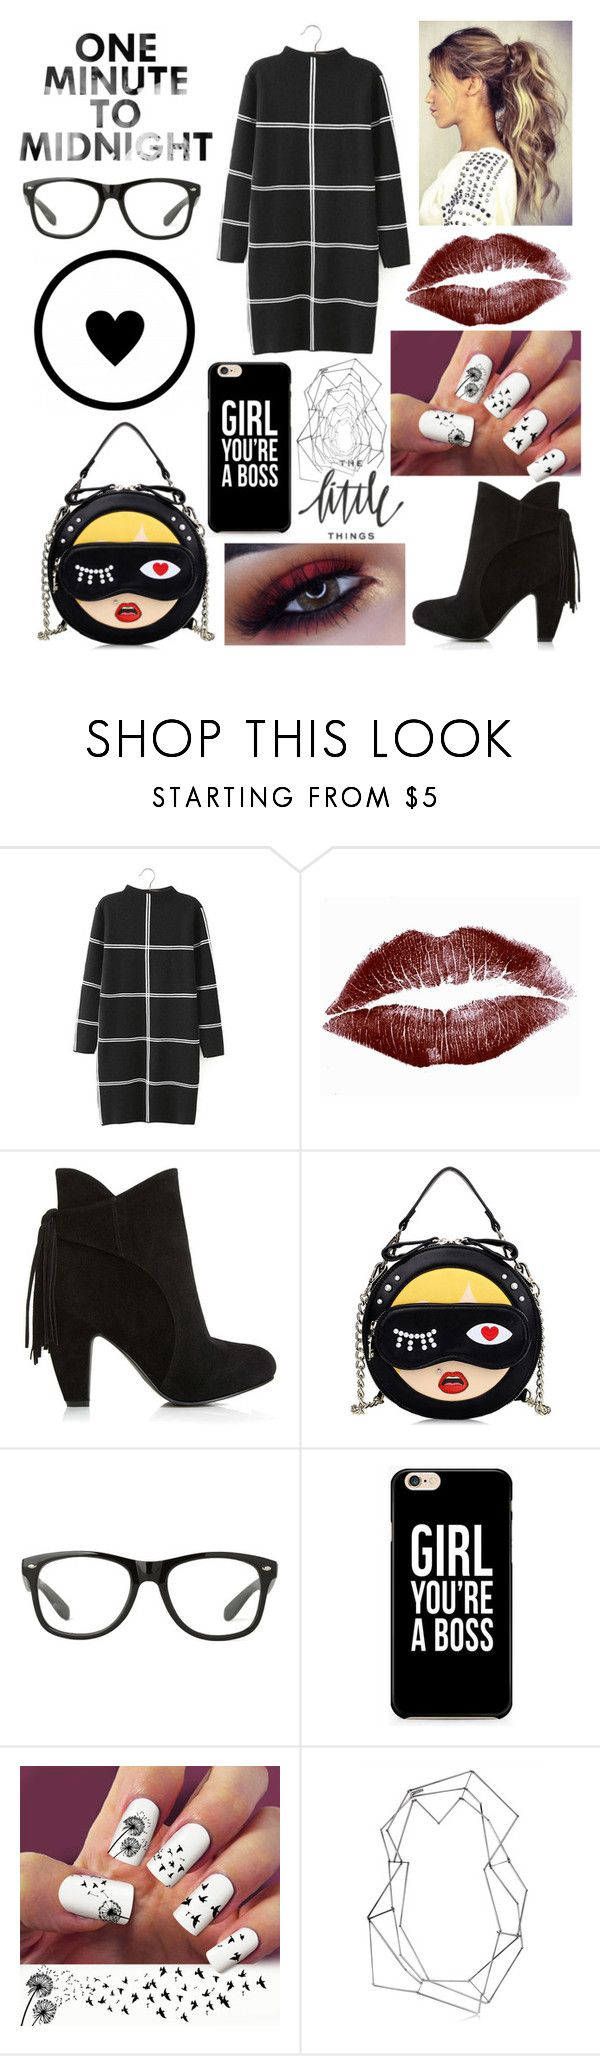 """#754"" by splendoraviolet ❤ liked on Polyvore featuring BANCI GIOIELLI"